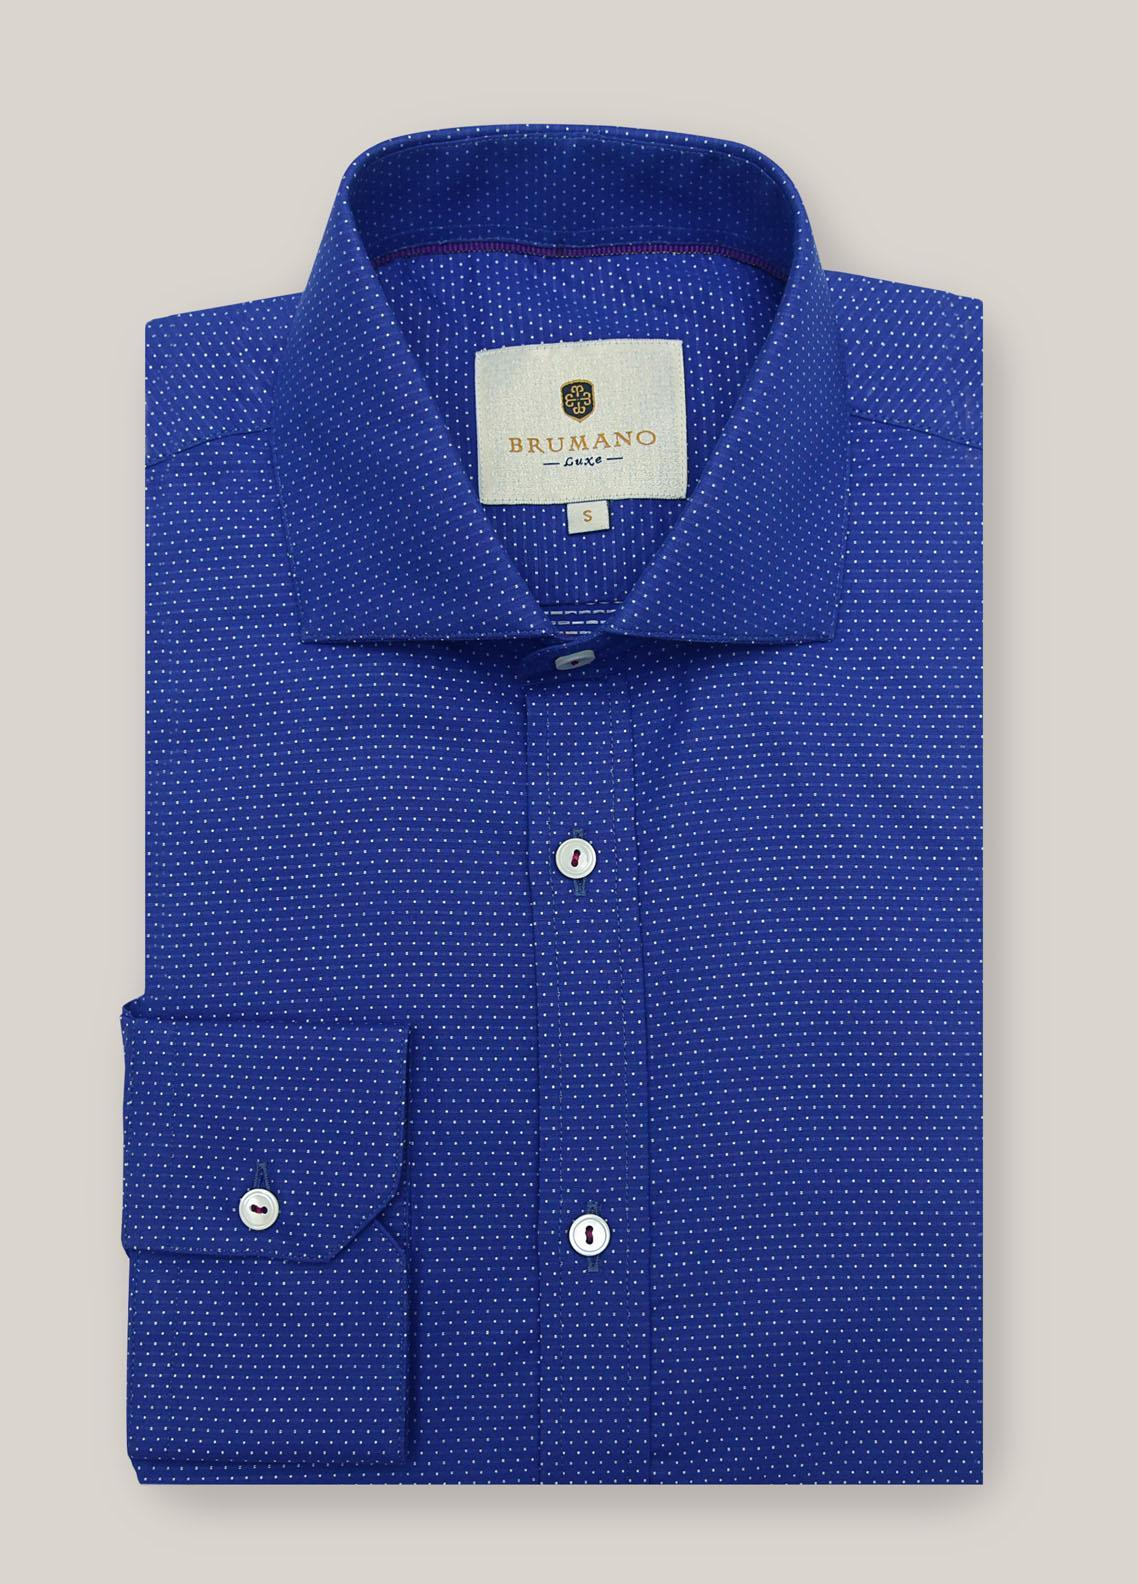 Brumano Cotton Casual Shirts for Men -  1298 Navy Blue